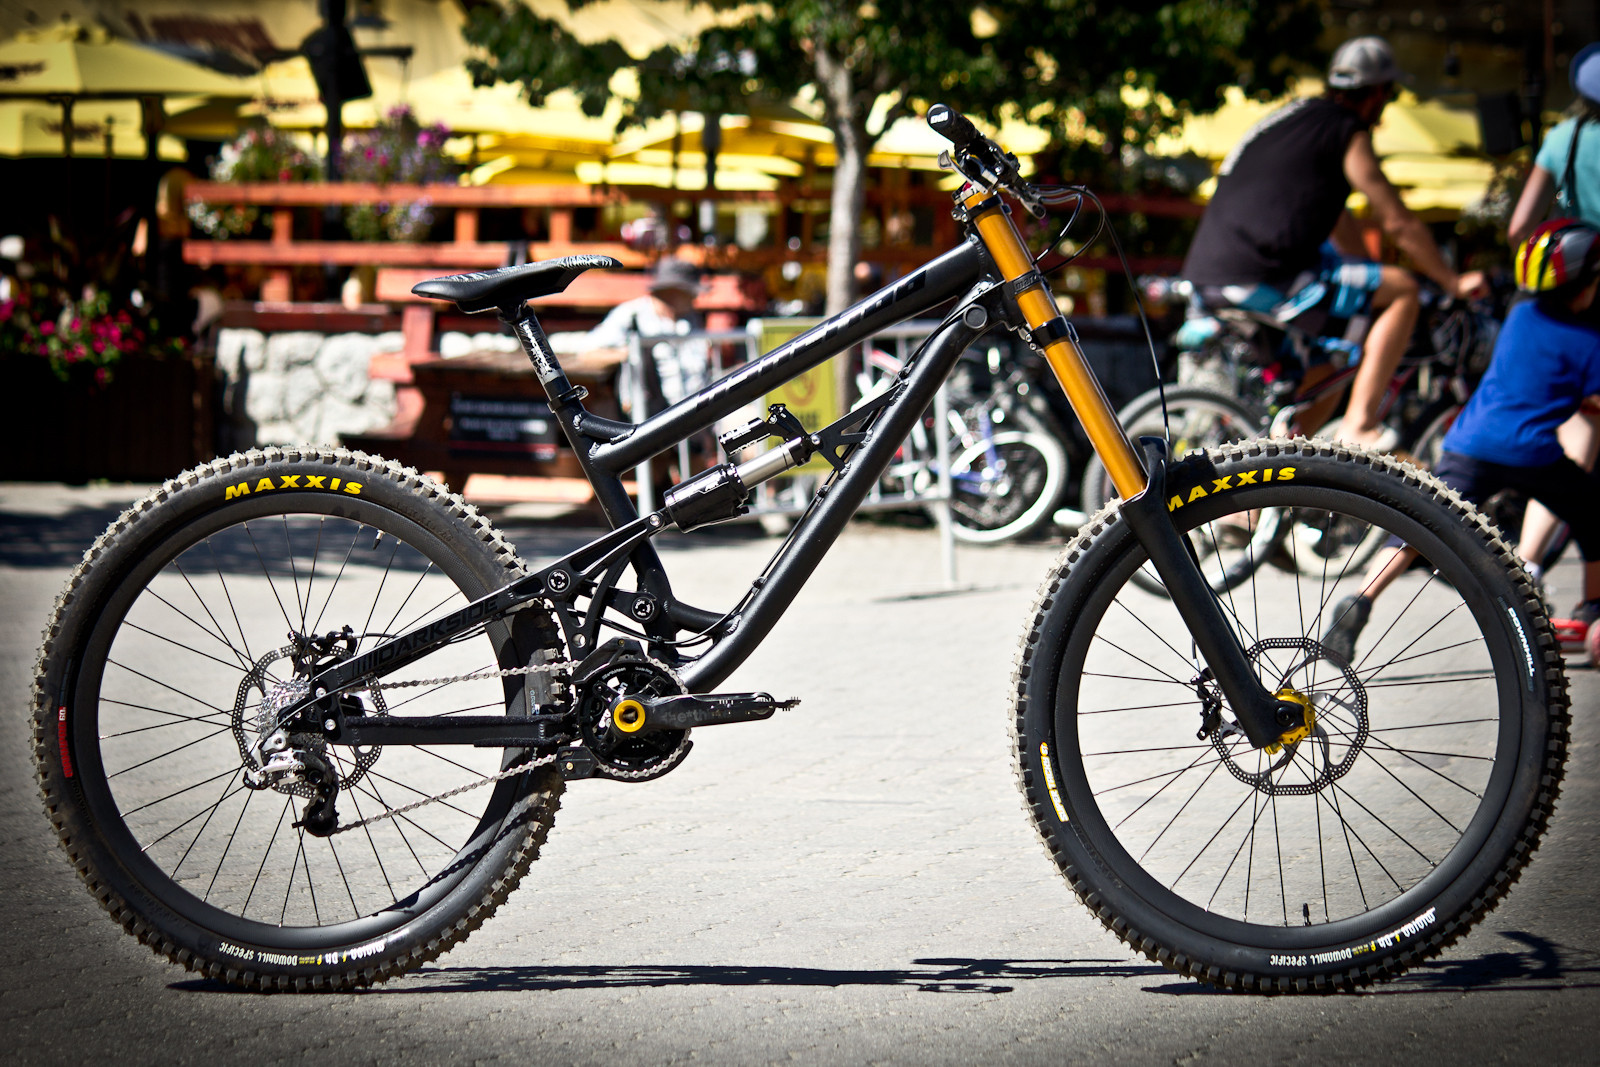 Sneak Peek: Banshee Darkside Prototype - Sneak Peek: Banshee Darkside Prototype - Mountain Biking Pictures - Vital MTB